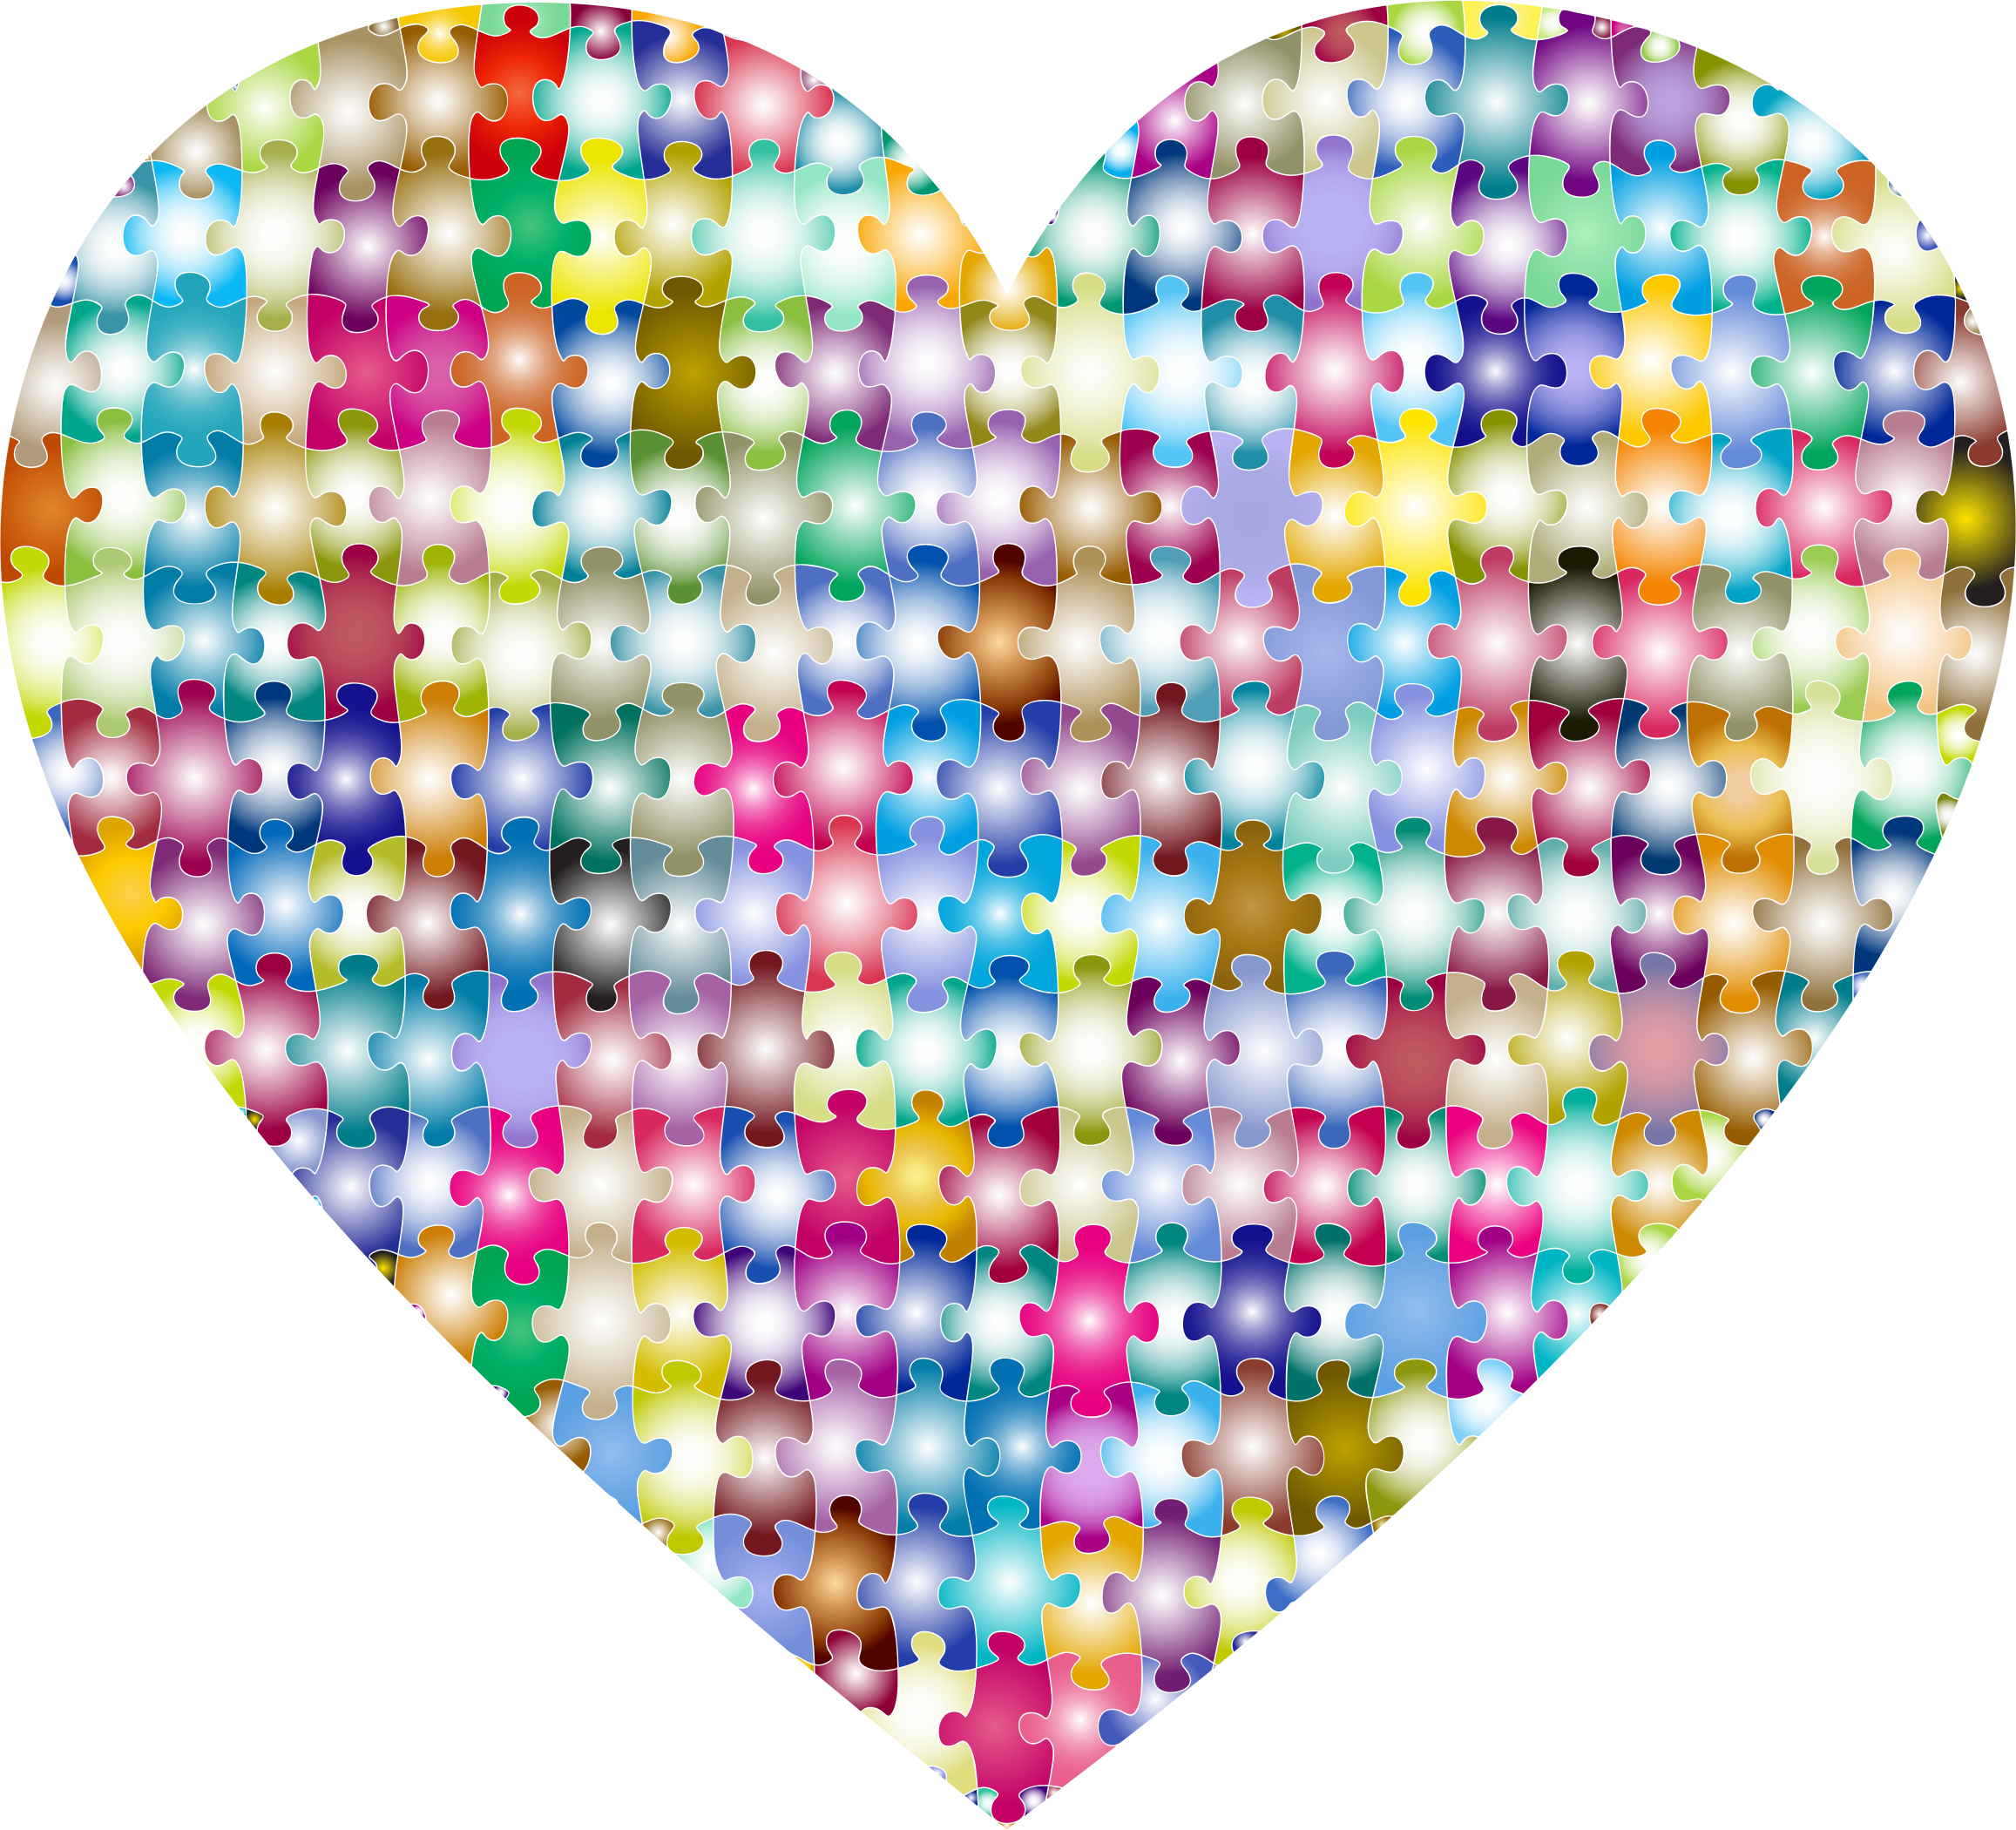 Colorful Puzzle Heart 4 by GDJ